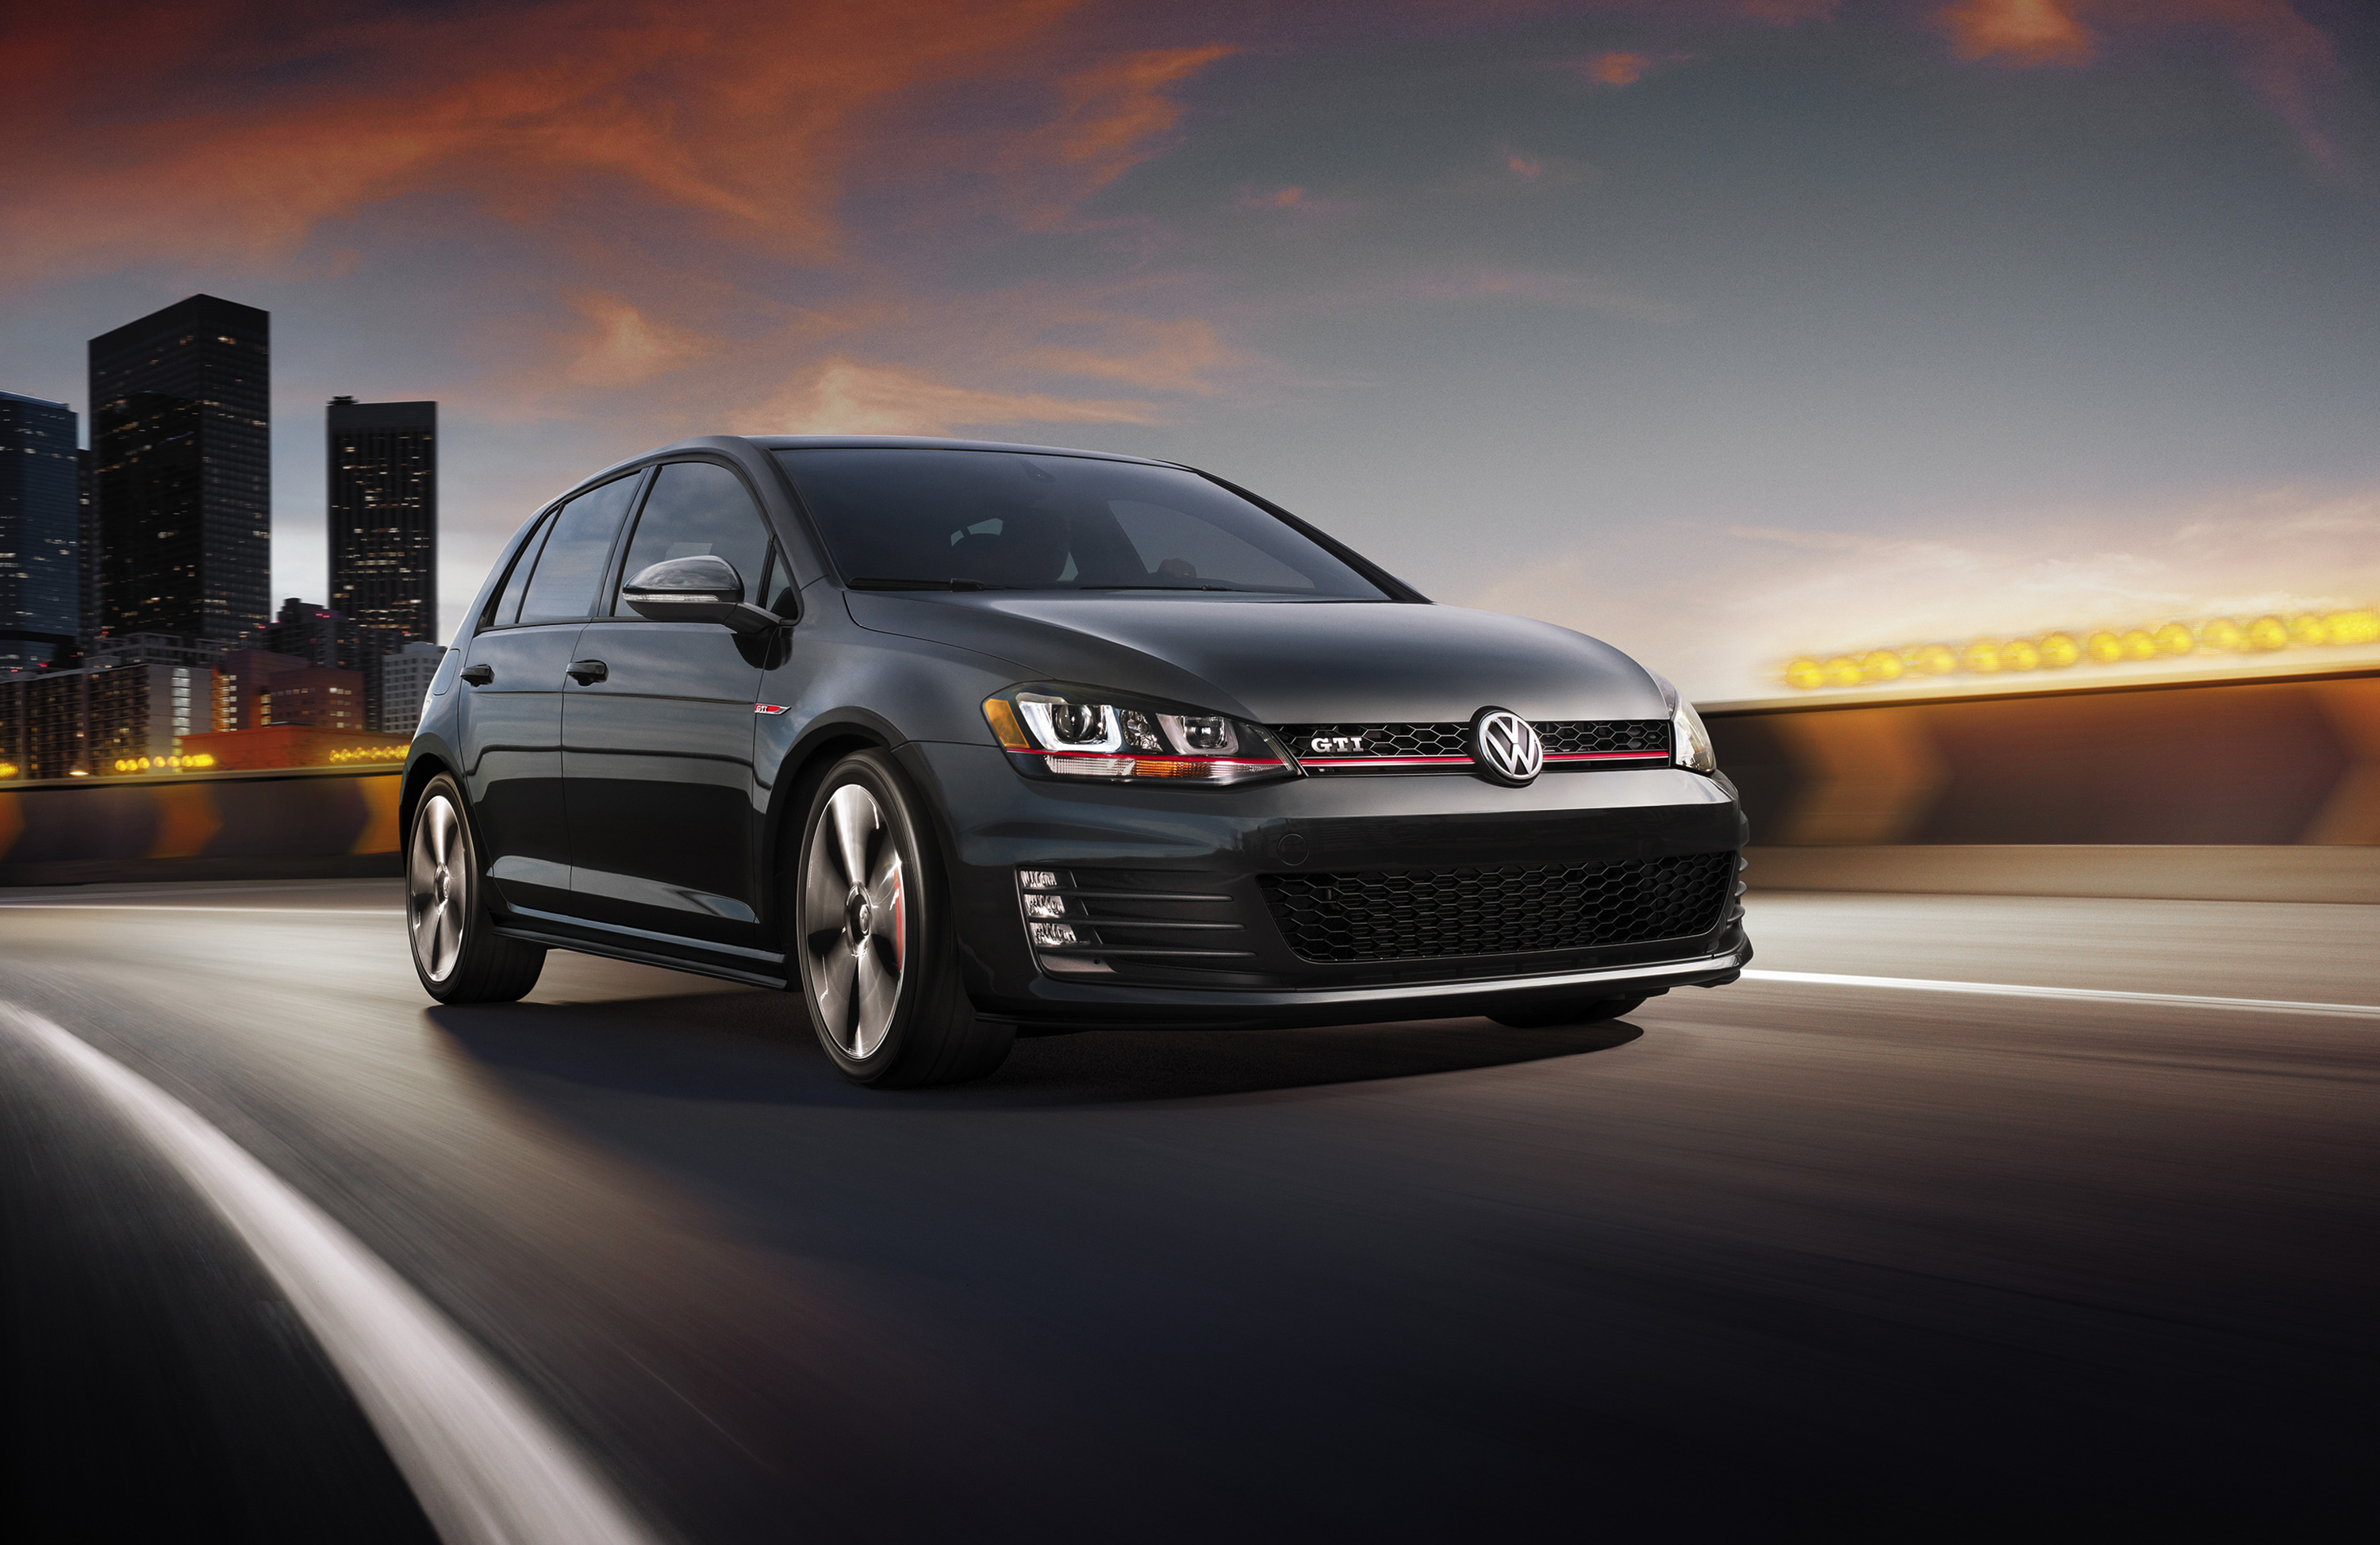 2019 Volkswagen Golf IV GTI photo - 3